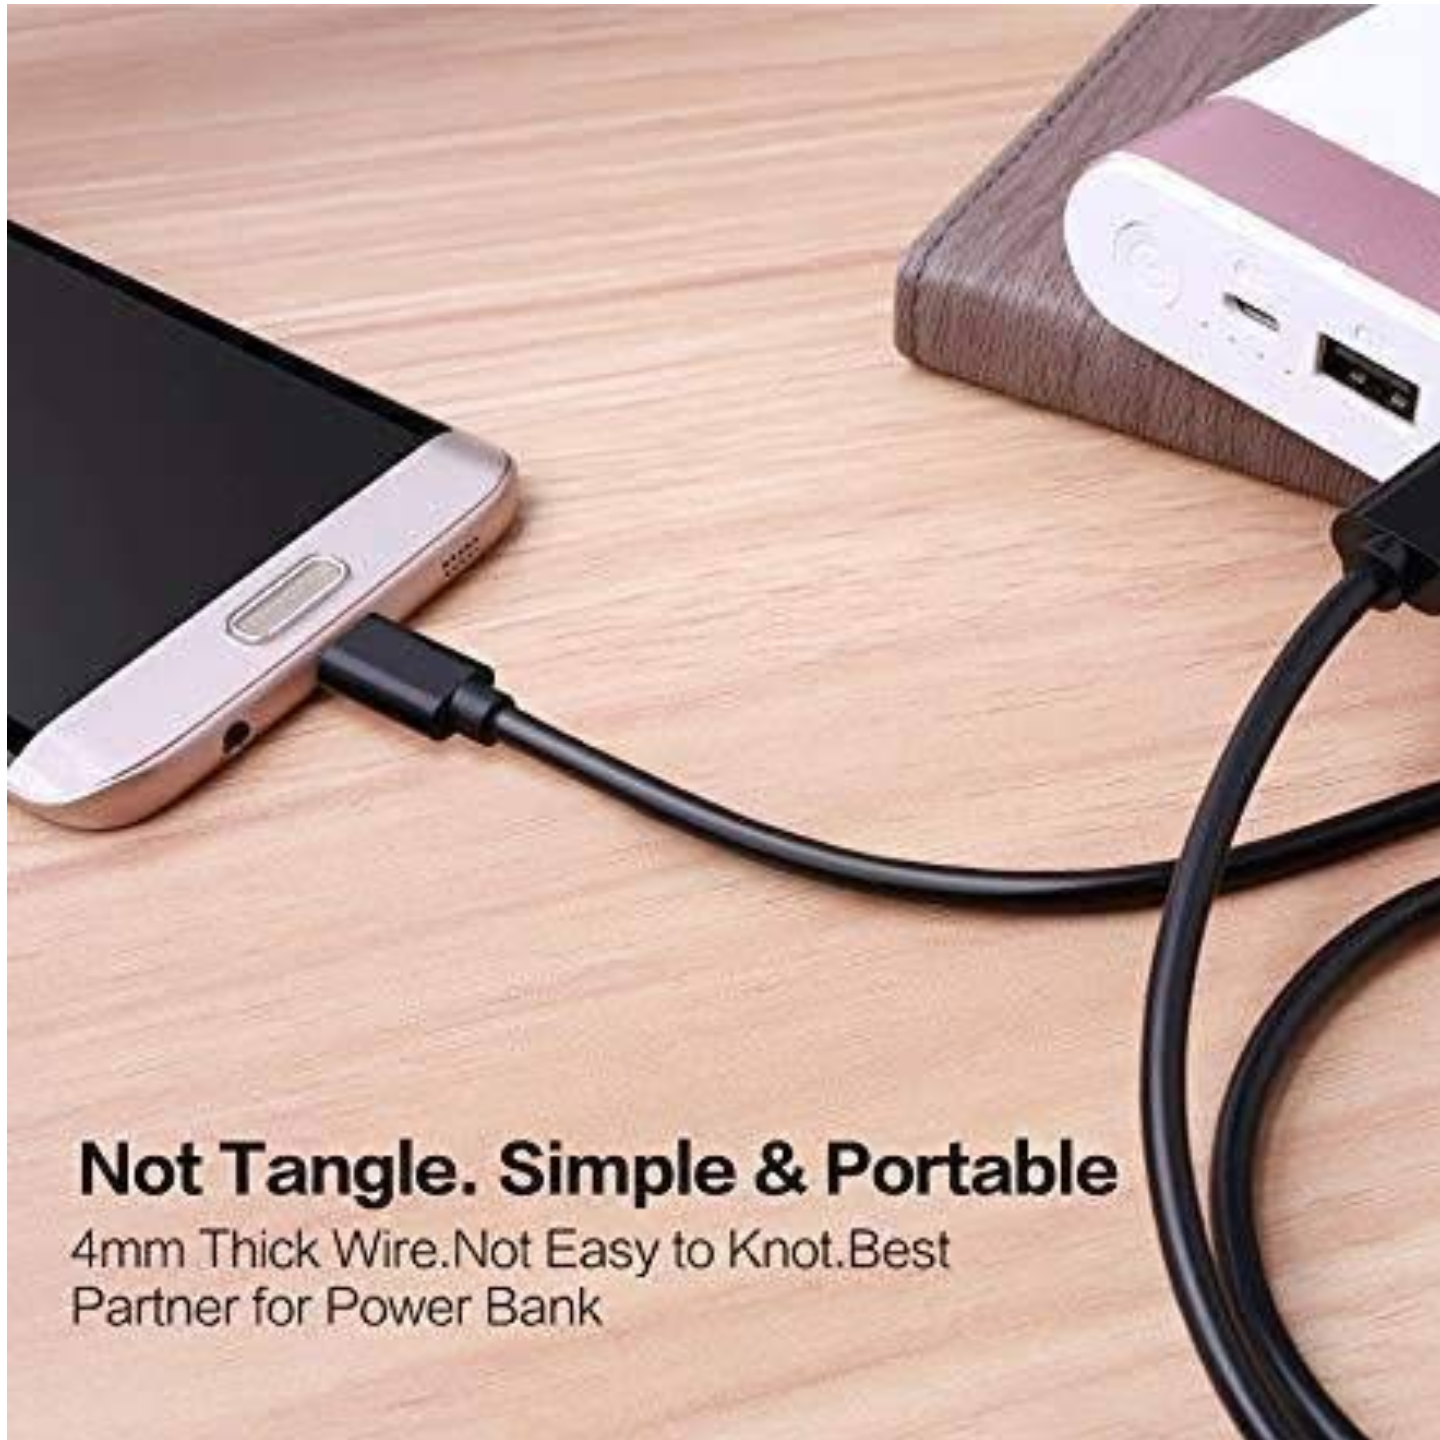 Micro USB Data Cable for All Purpose (Can be Used as Power Bank Cable & Charging Your Phone)